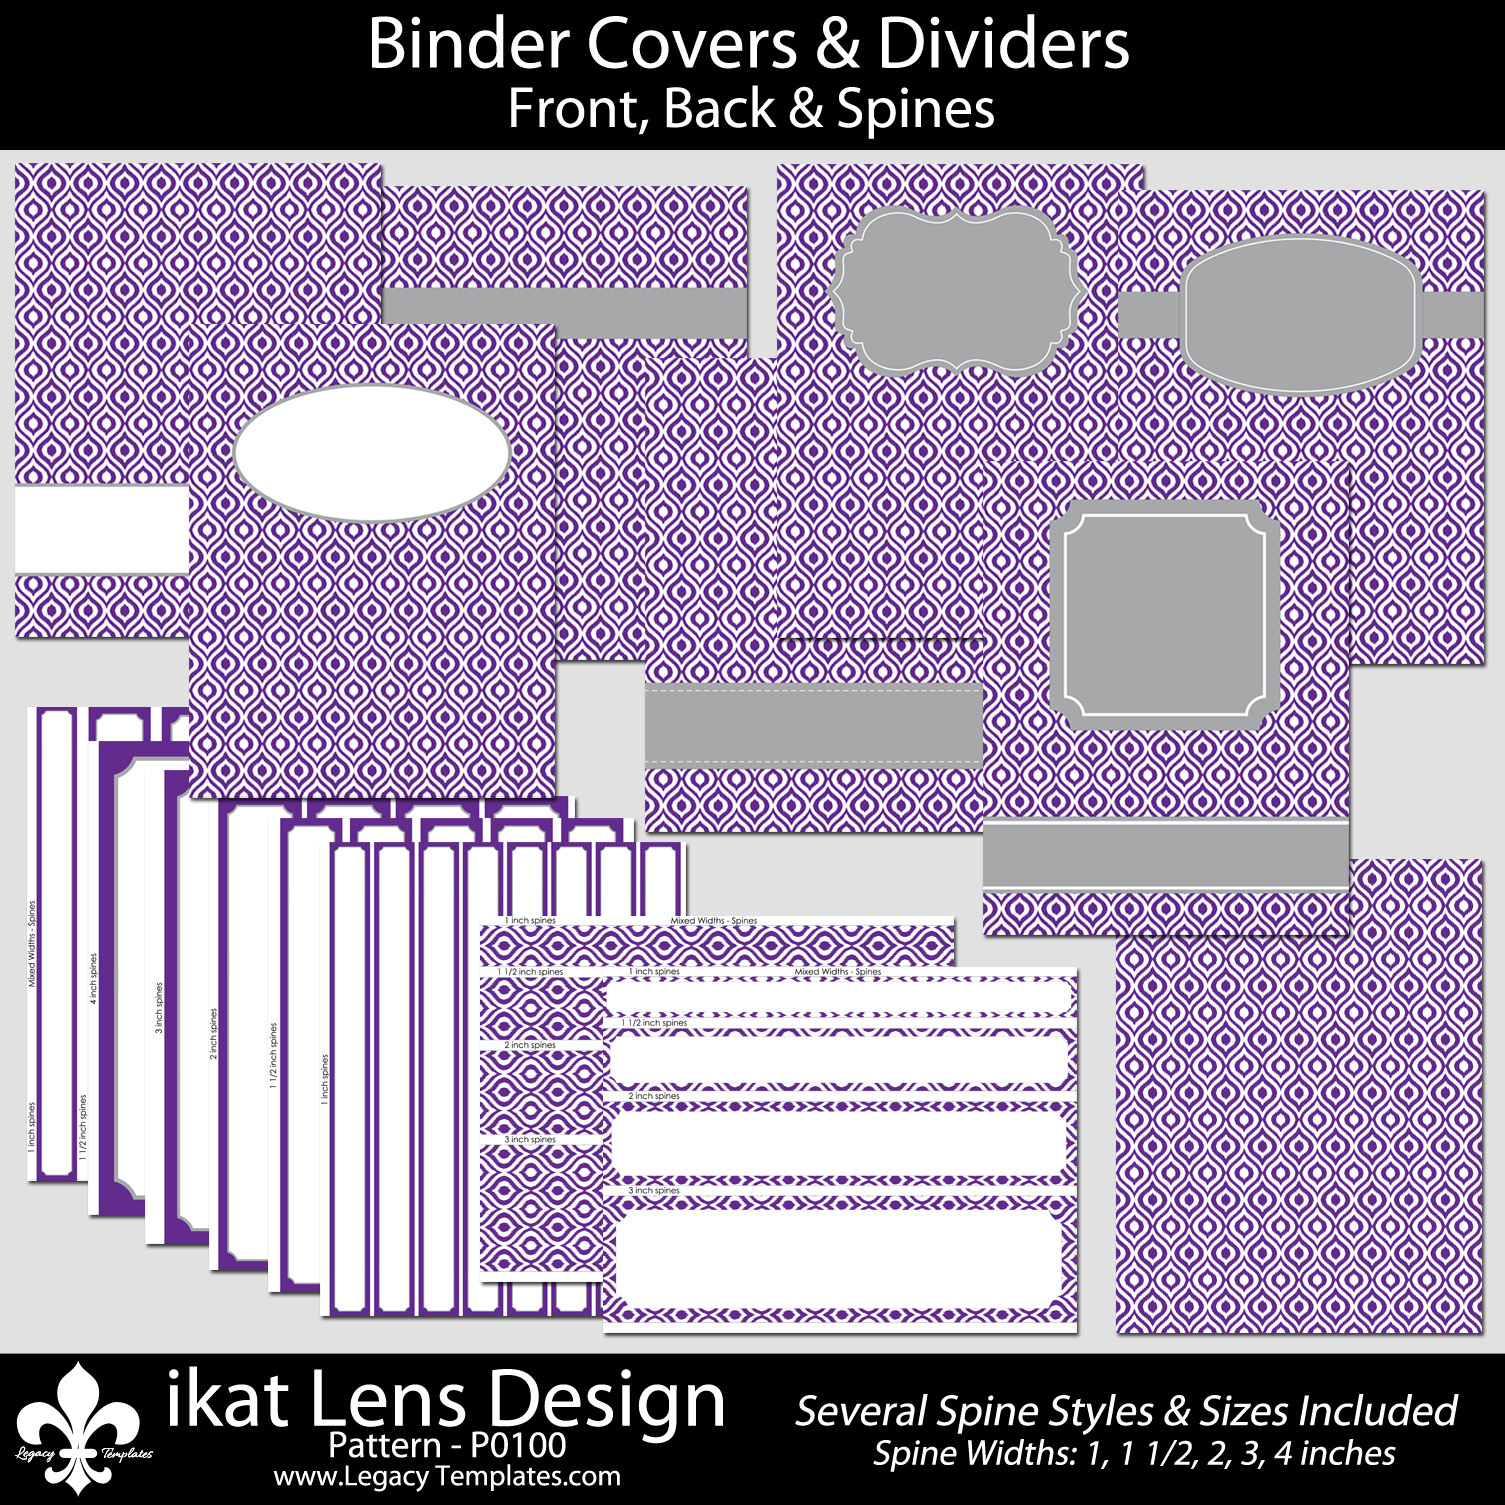 Generous 1 Inch Hexagon Template Small 1 Year Experience Java Resume Format Flat 10 Half Hexagon Template 100 Free Printable Resume Builder Old 100 Template Black12 Hour Schedule Template Purple Binder Cover With Colorful Labels \u0026 An Ikat Design   P0100 ..